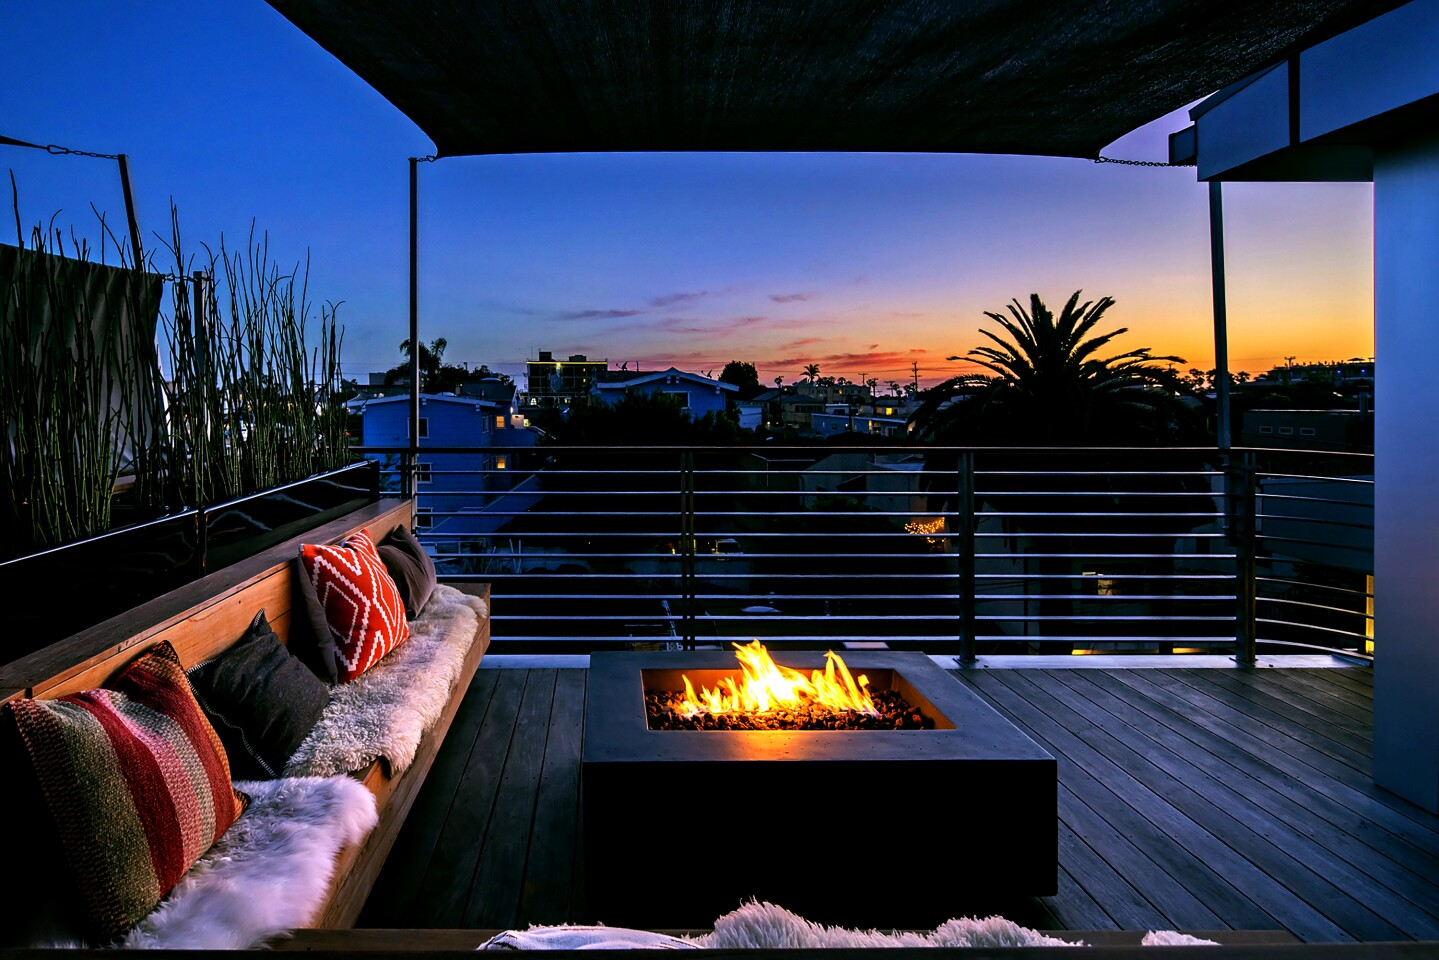 The panoramic rooftop has built-in seating, a natural gas fire pit and integrated kitchen equipped with a grill and prep sink.